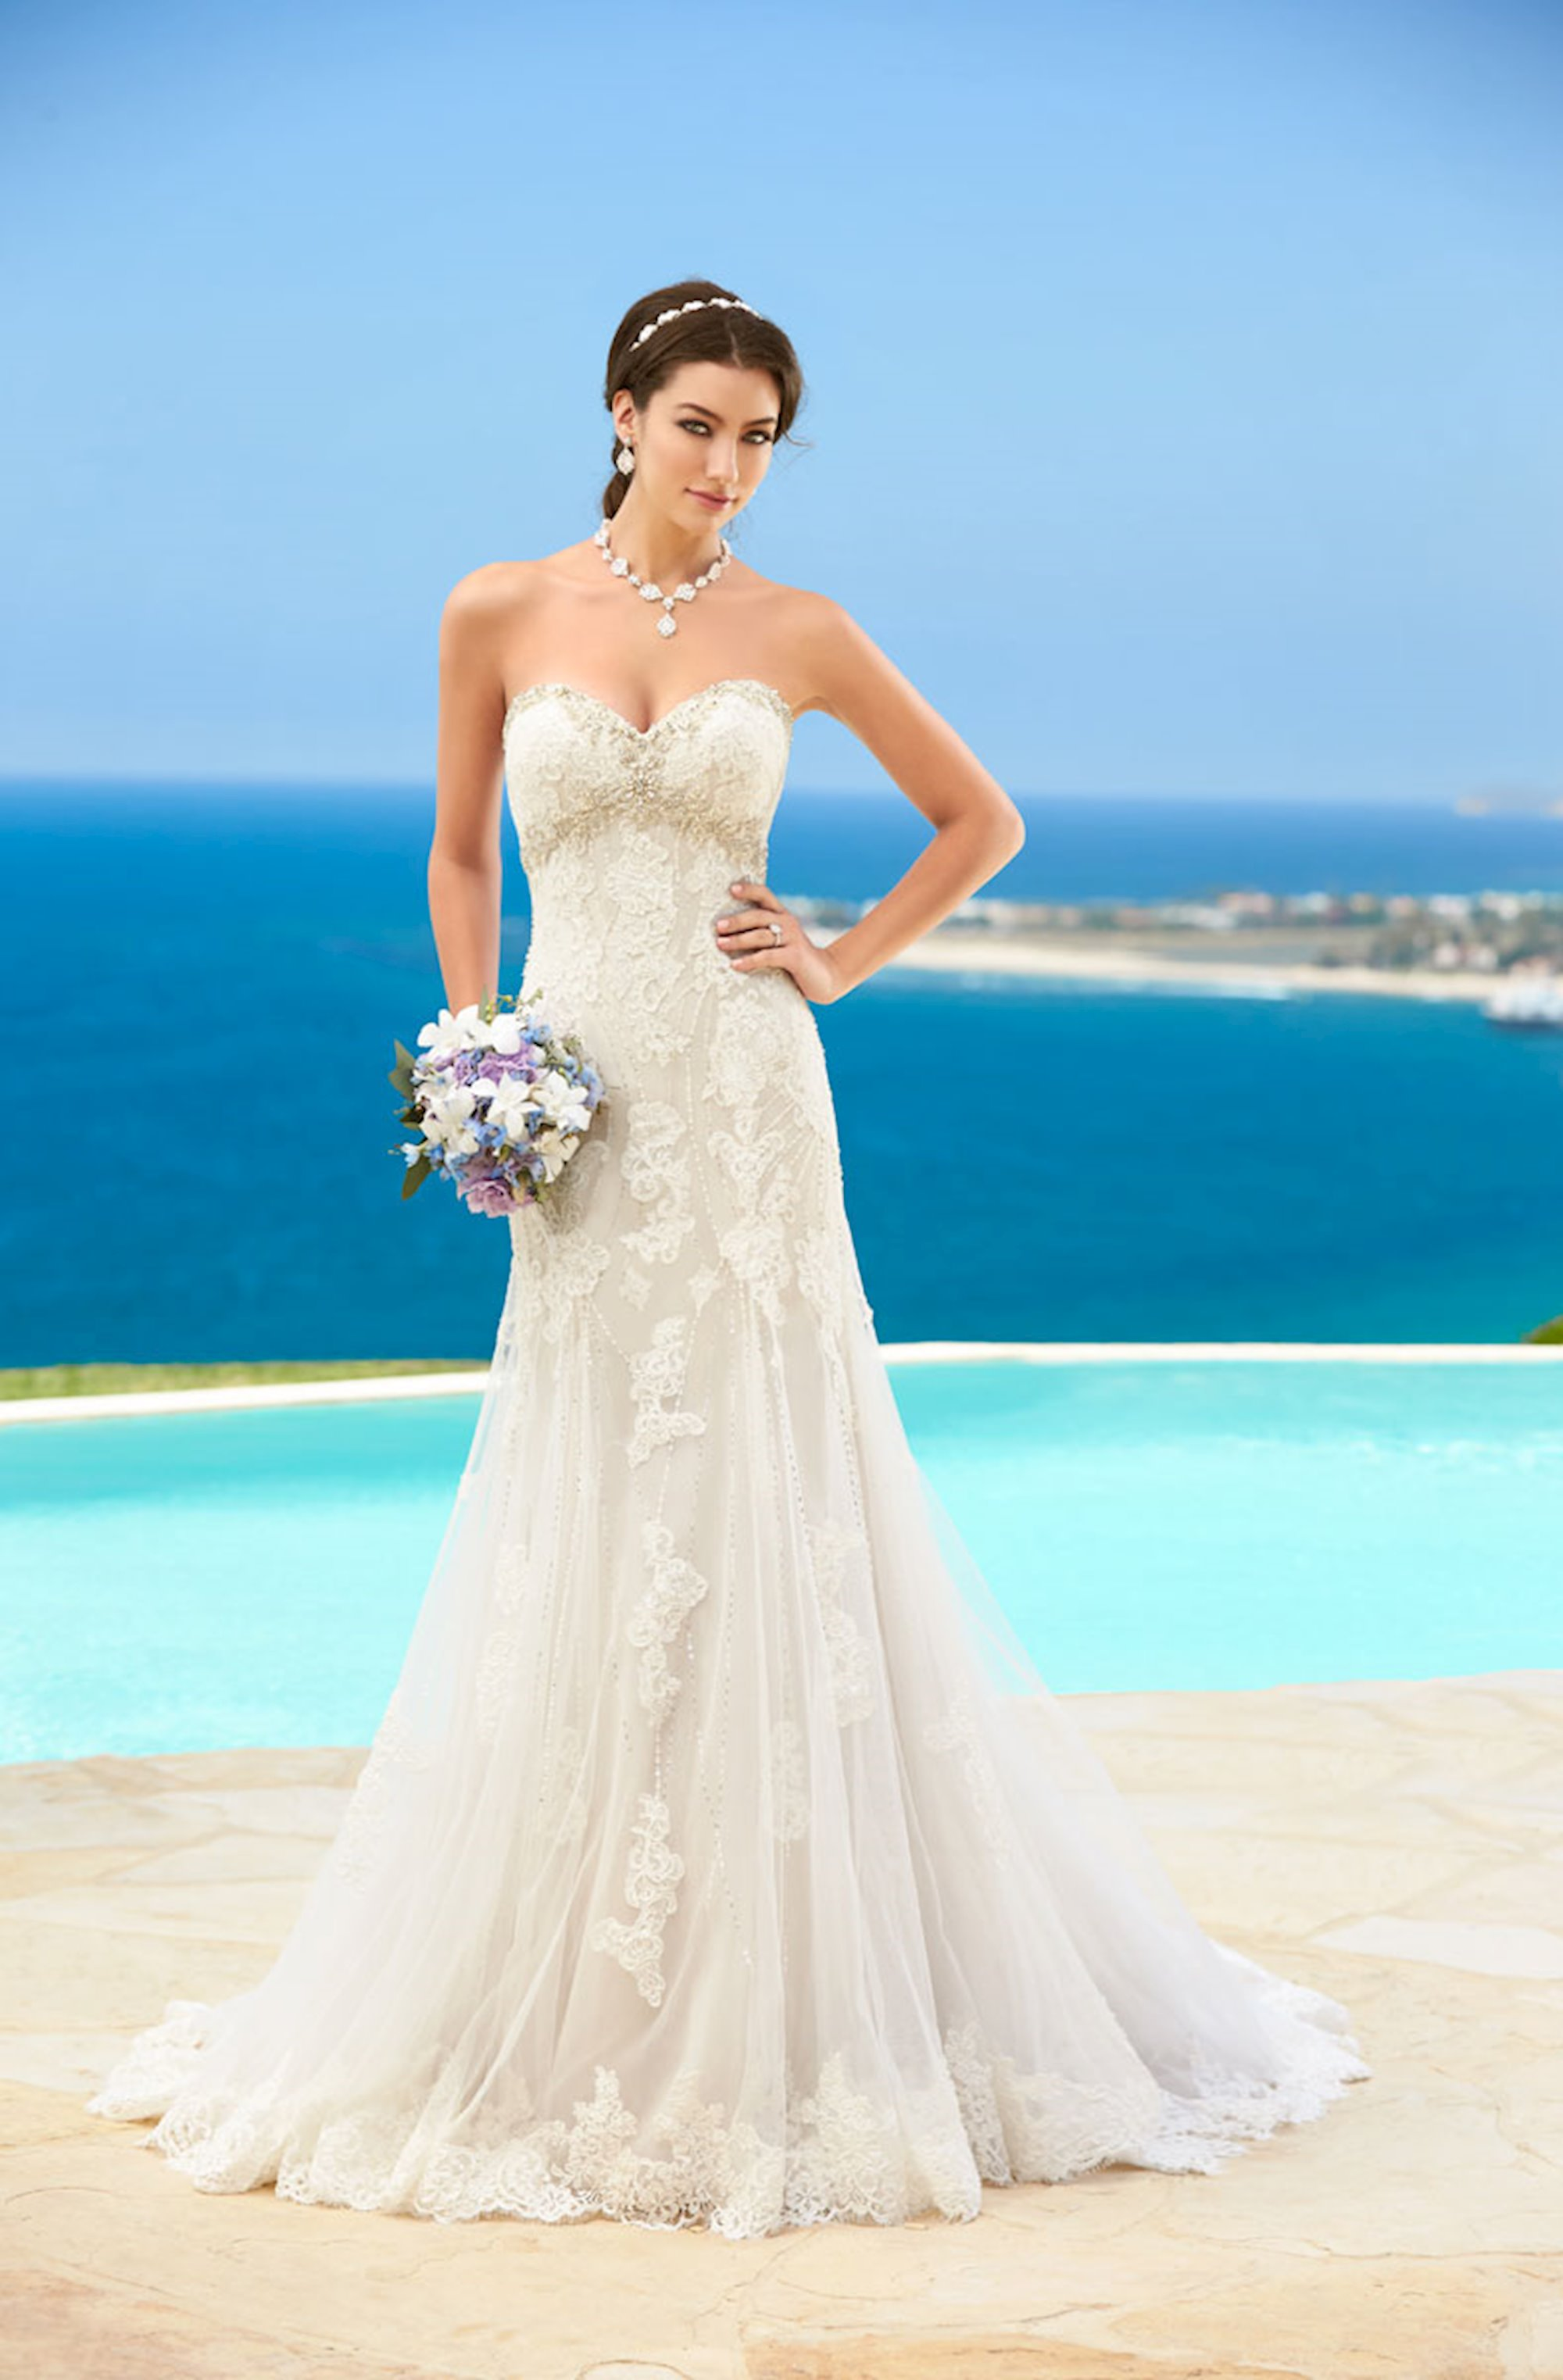 Famous Bridal Gowns Under 2000 Gallery - All Wedding Dresses ...